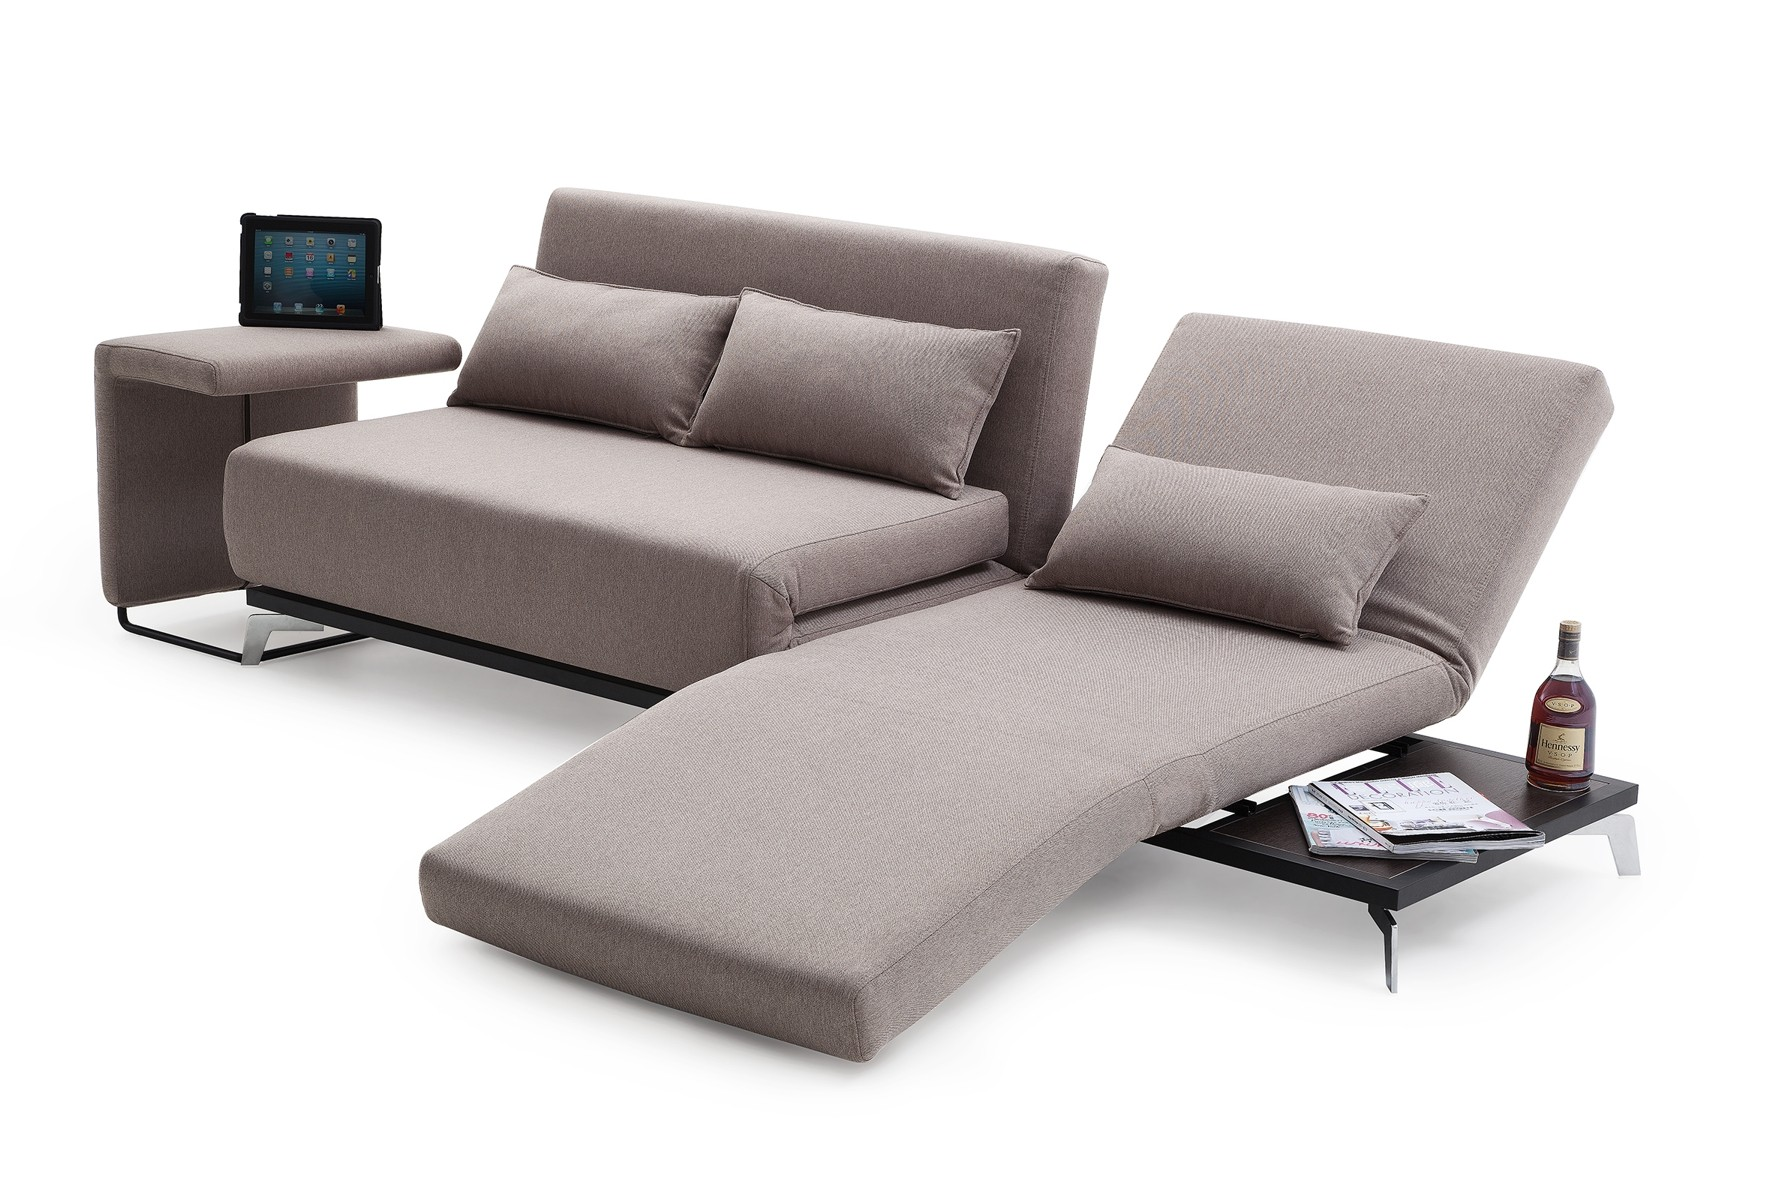 Moden Contemporary Sofa Bed 2017